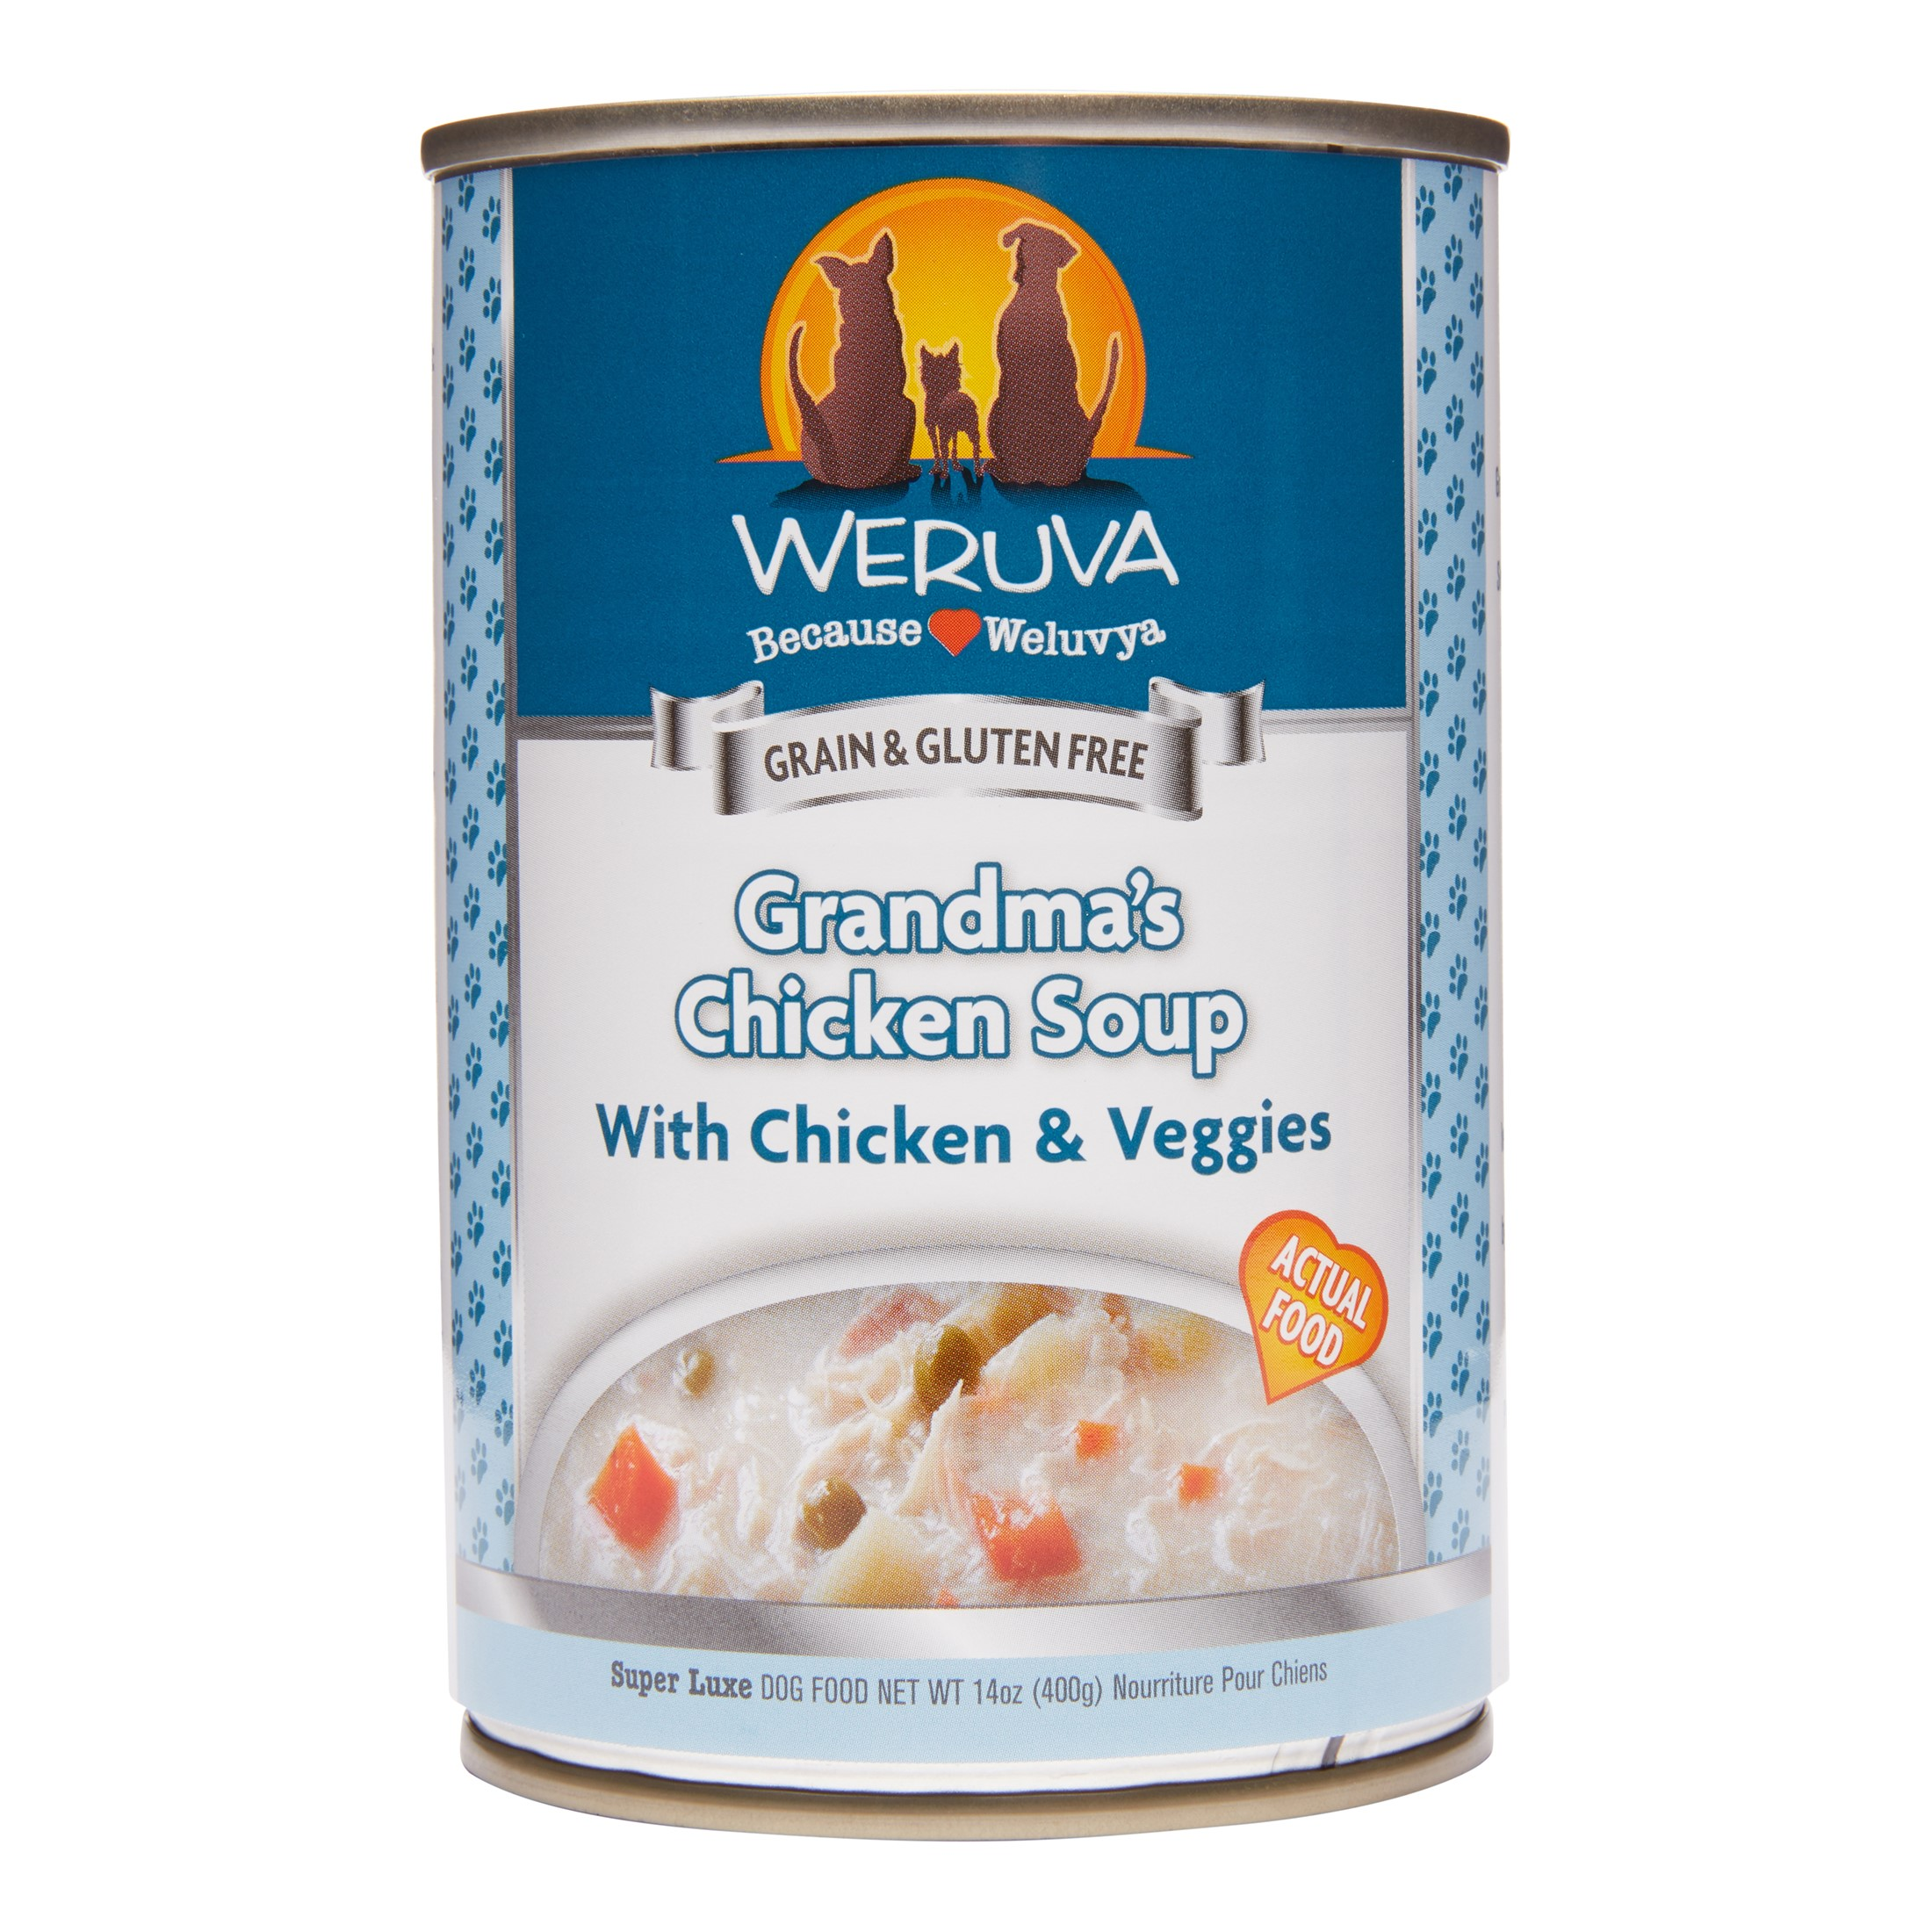 Weruva Human Style Grain-Free Grandma's Chicken Soup with Chicken & Veggies Wet Dog Food, 14 Oz. Cans (12 Pack)